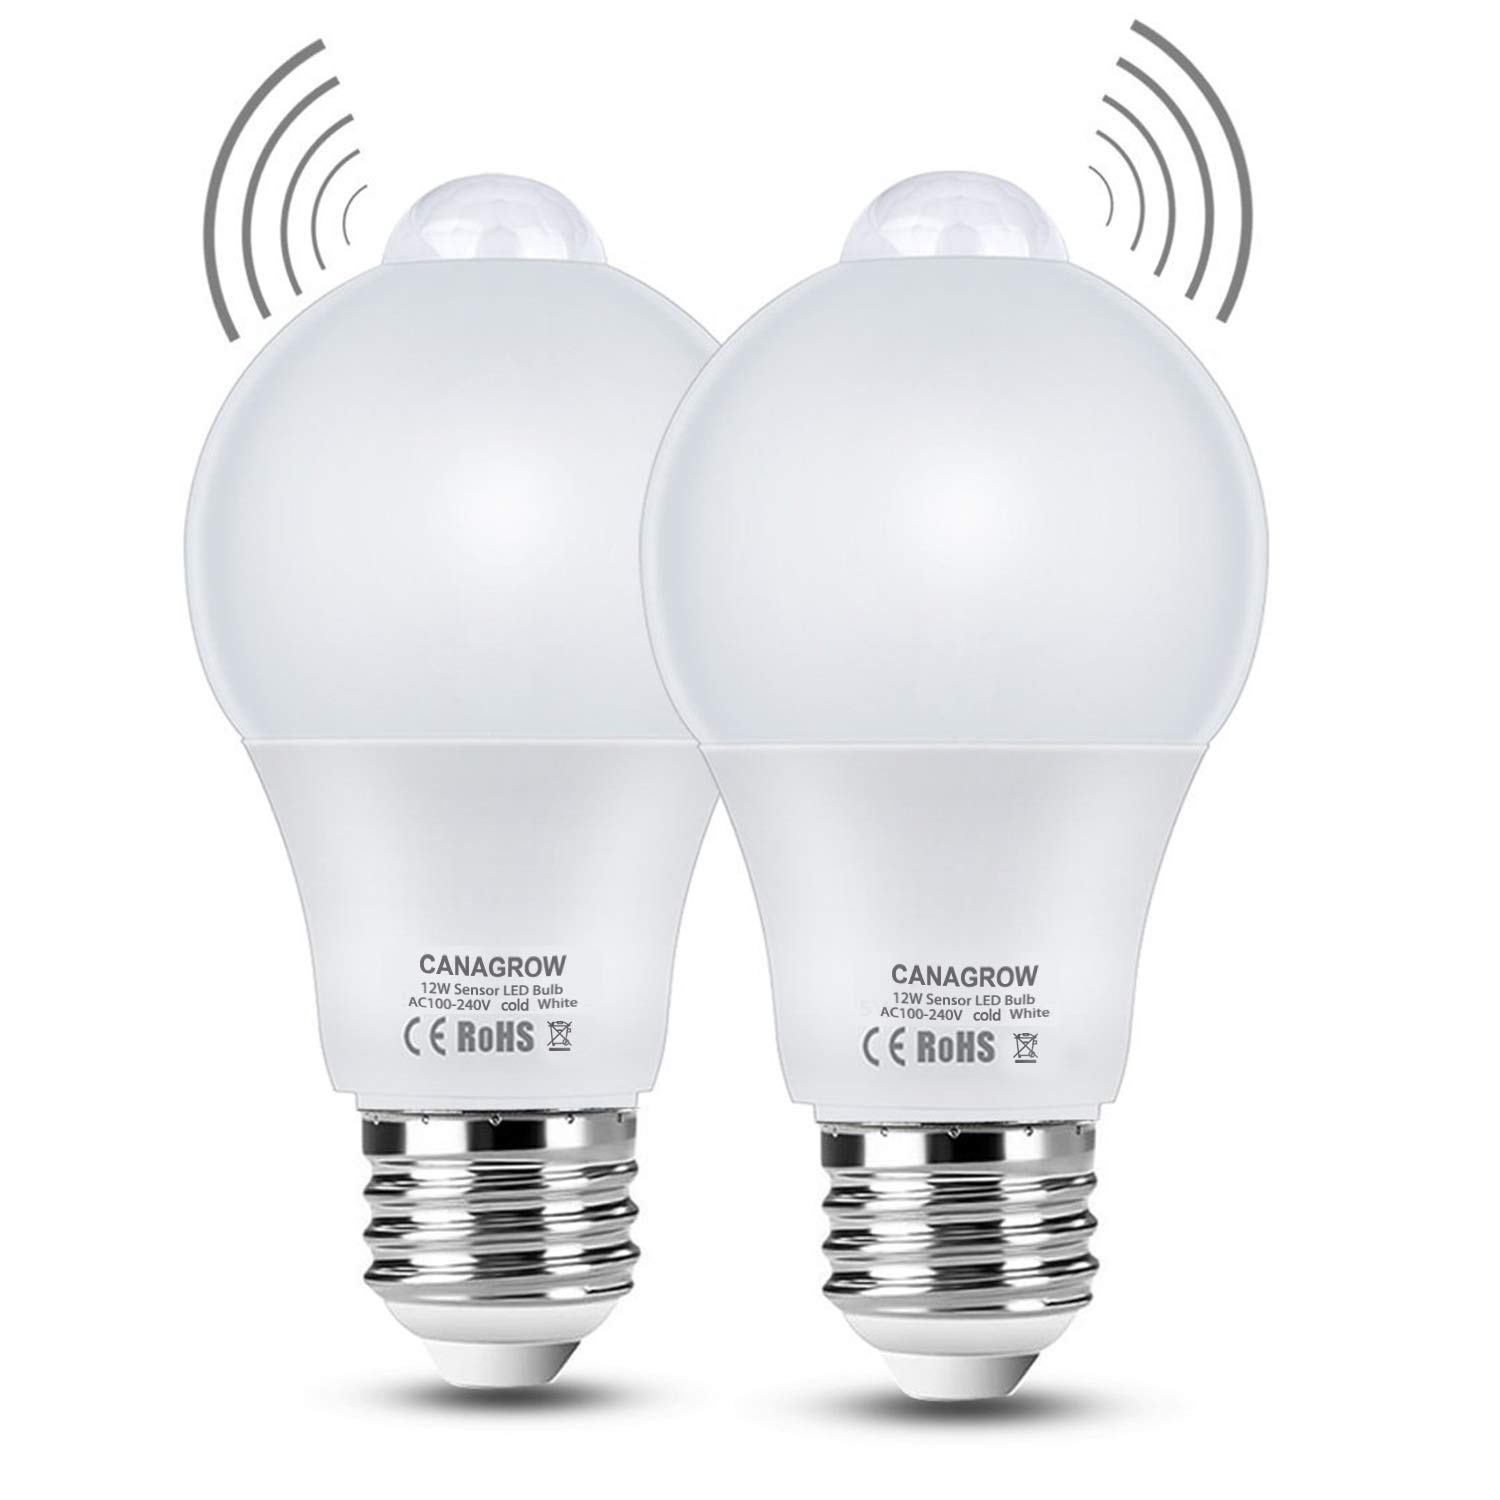 Details About Smart Light Bulb Daylight Motion Sensor Security Outdoor Led Value Pack Auto New